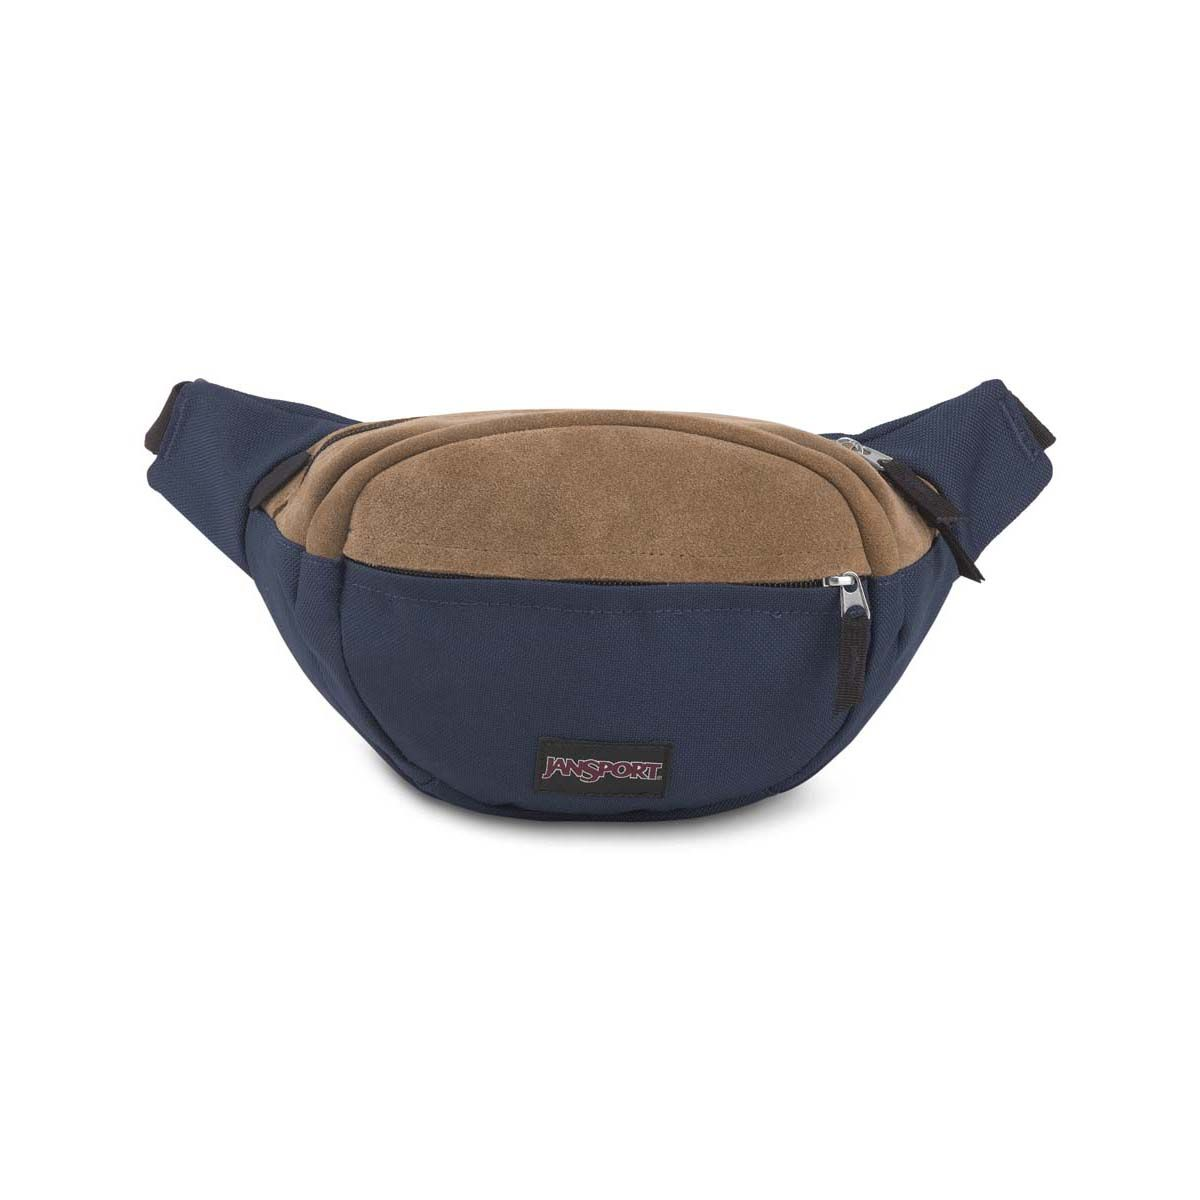 JanSport Fifth Ave Suede Fanny Pack in Navy